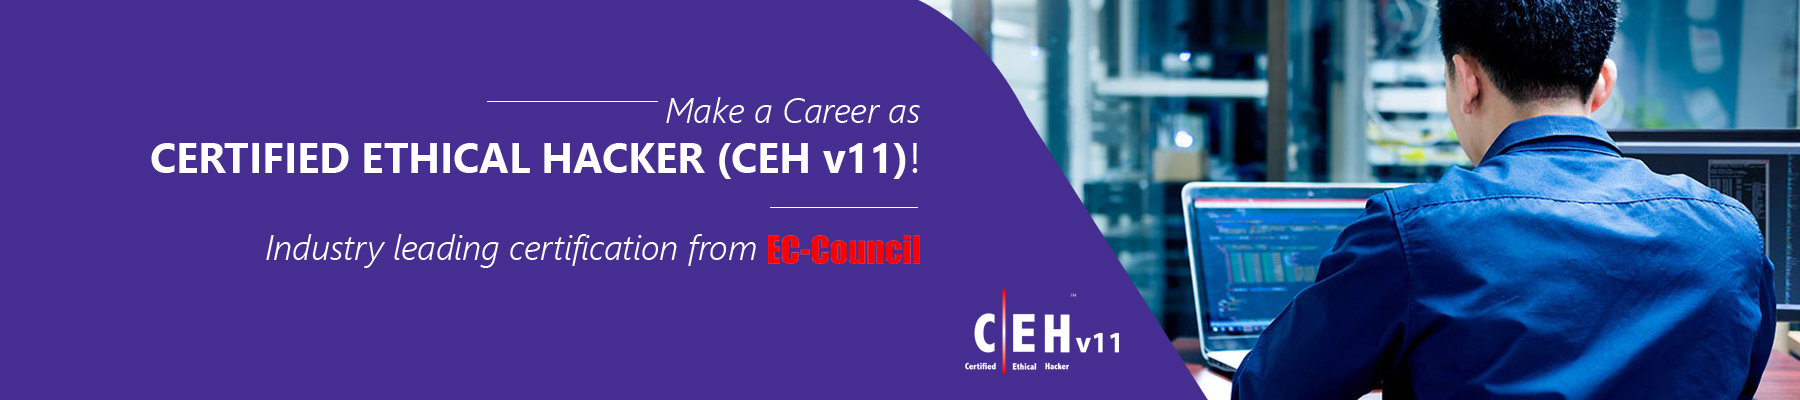 WEB BANNER FOR CEH